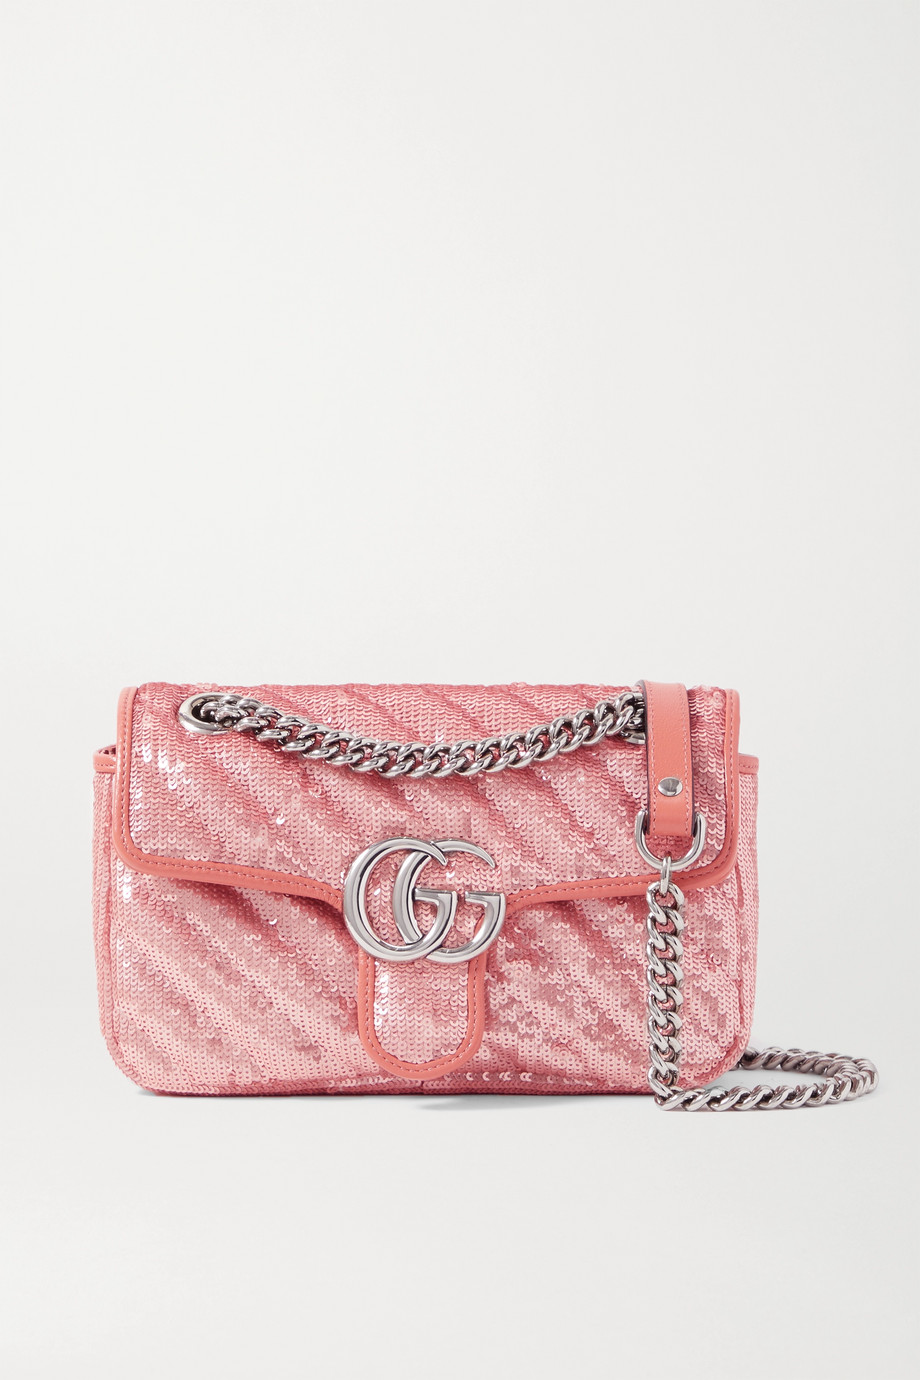 Gucci GG Marmont mini leather-trimmed sequined silk shoulder bag